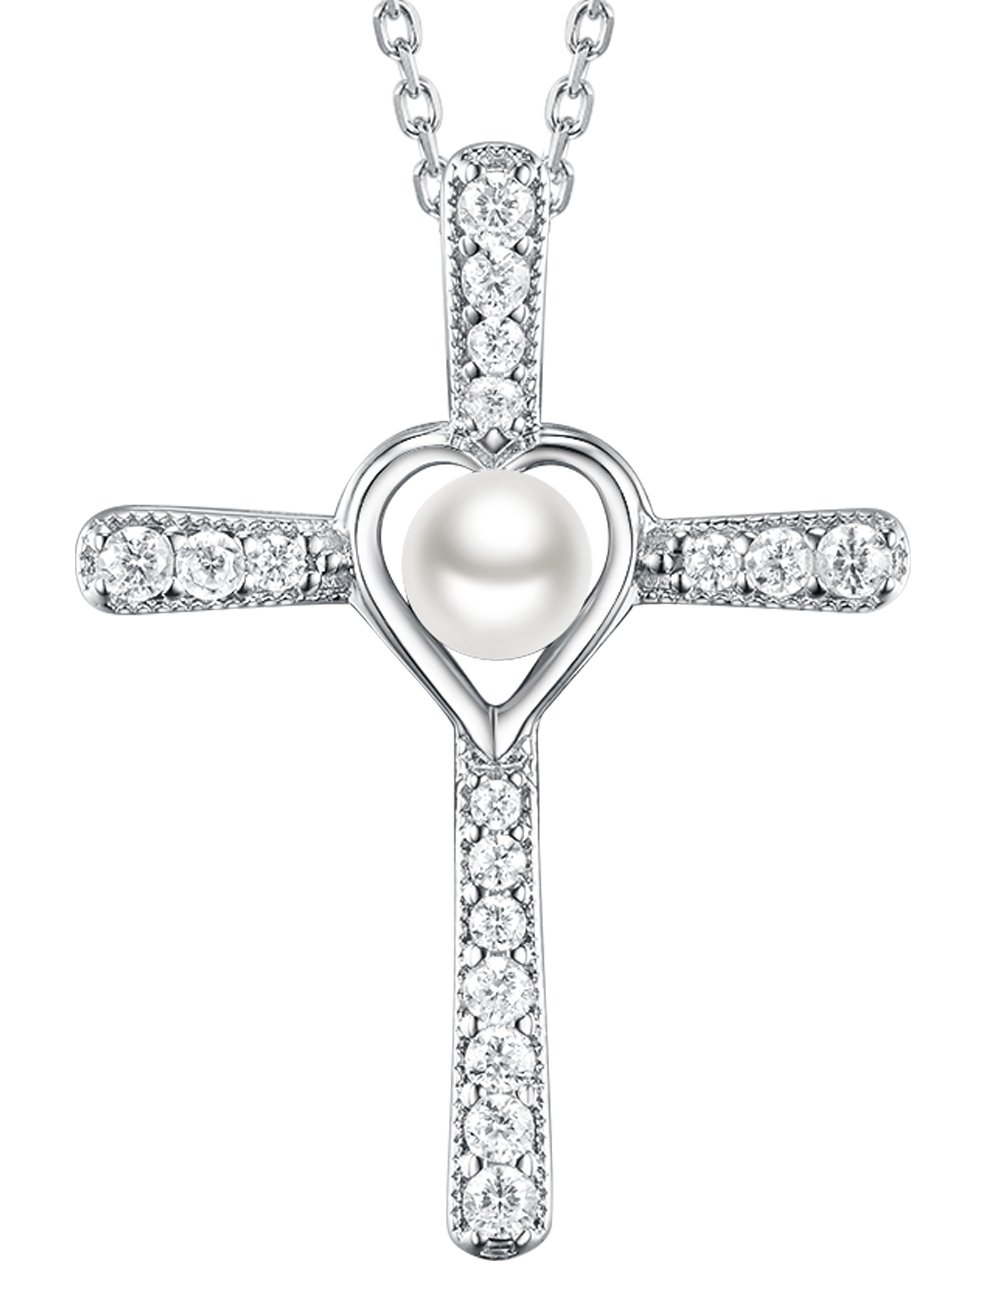 Love Heart God Cross Pendant White Pearl necklace June Birthstone Jewelry Anniversary Gift Birthday Gifts for Women for and Family Sterling Silver